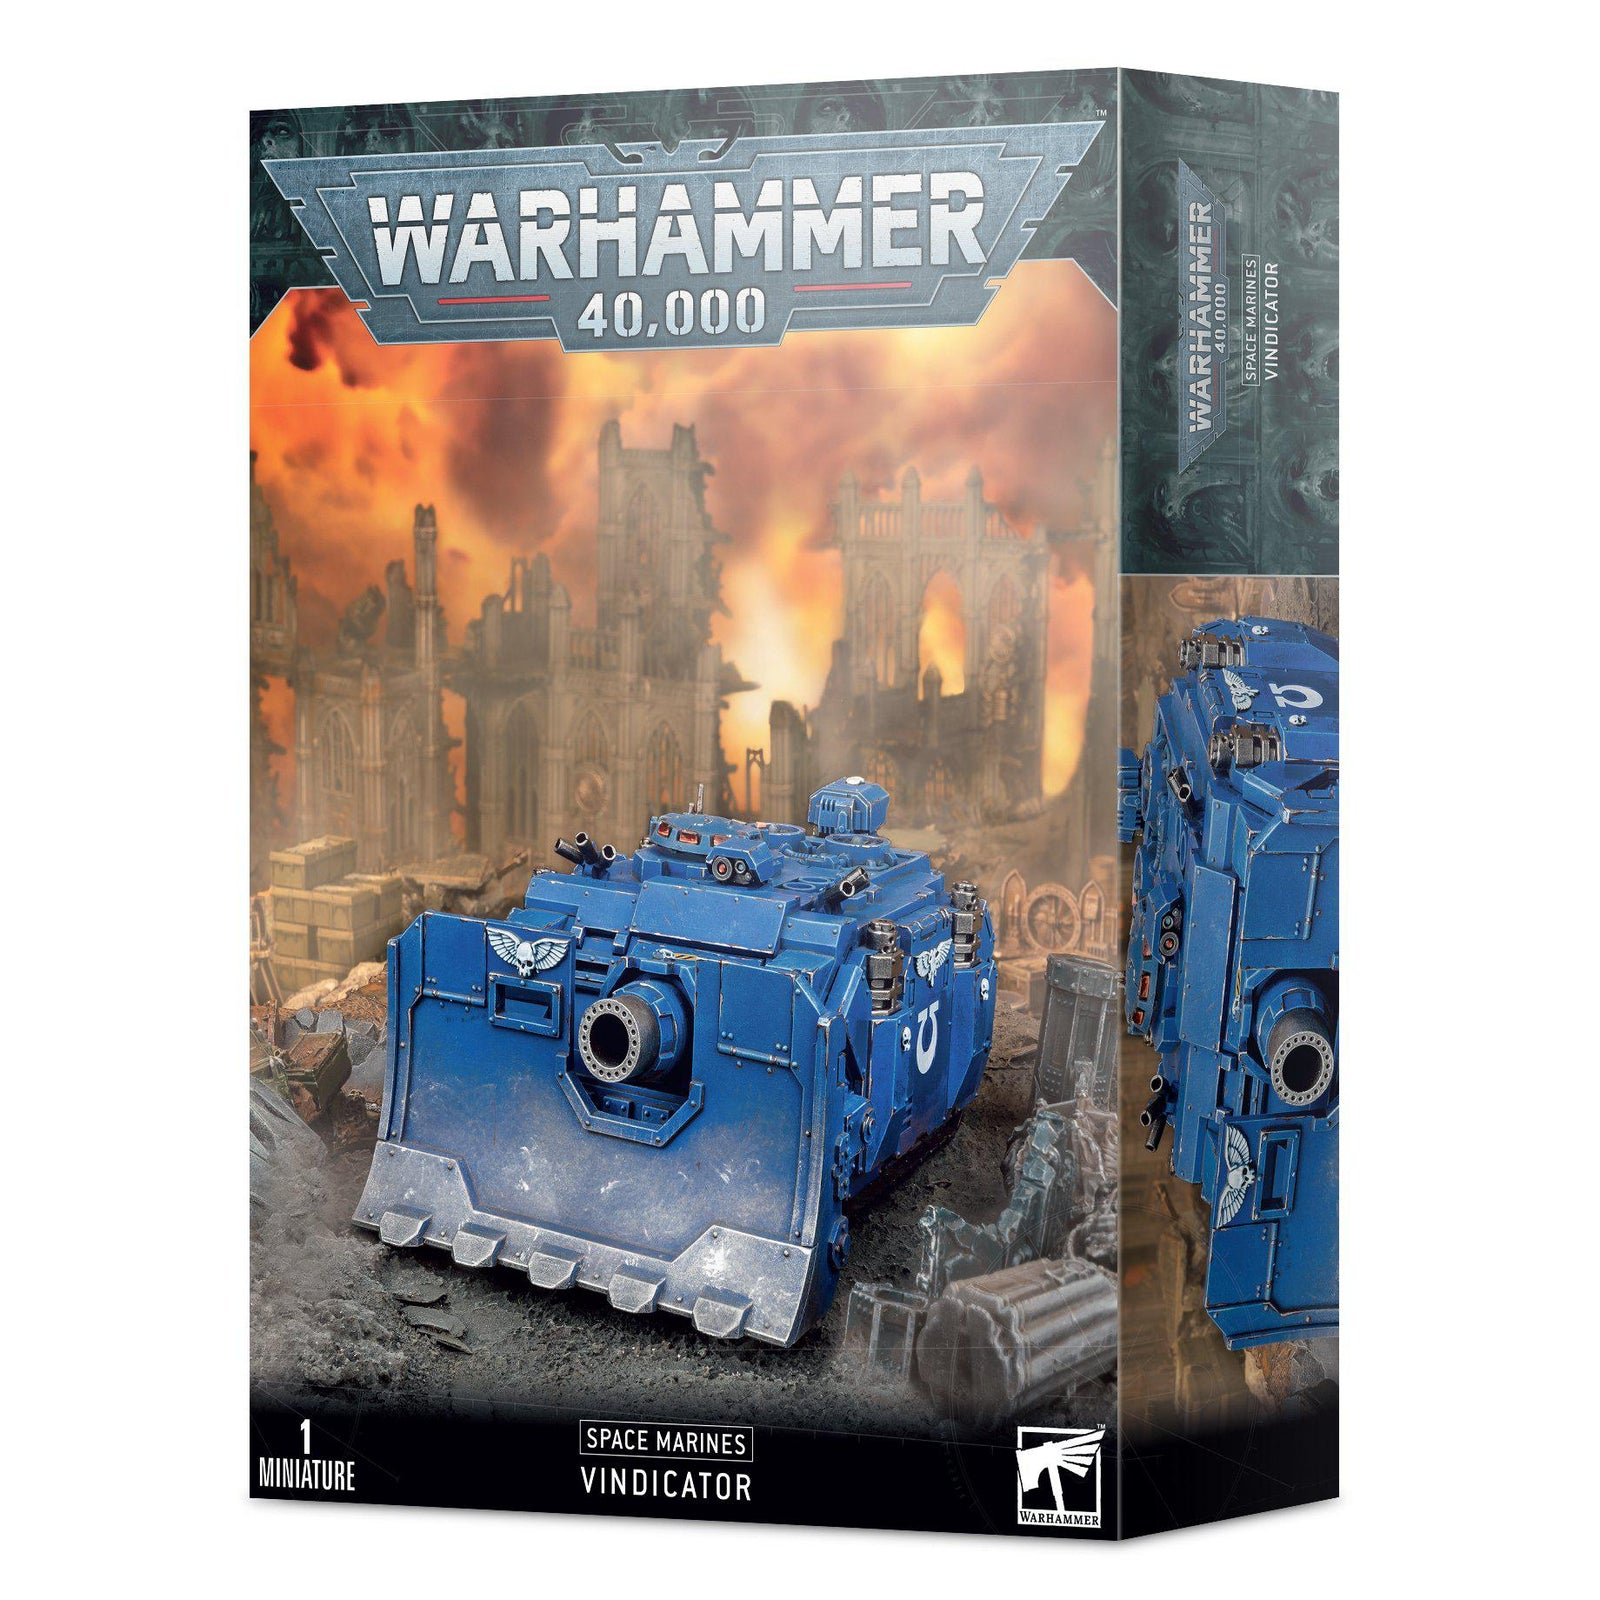 Box Packaging for Space marines vindicator